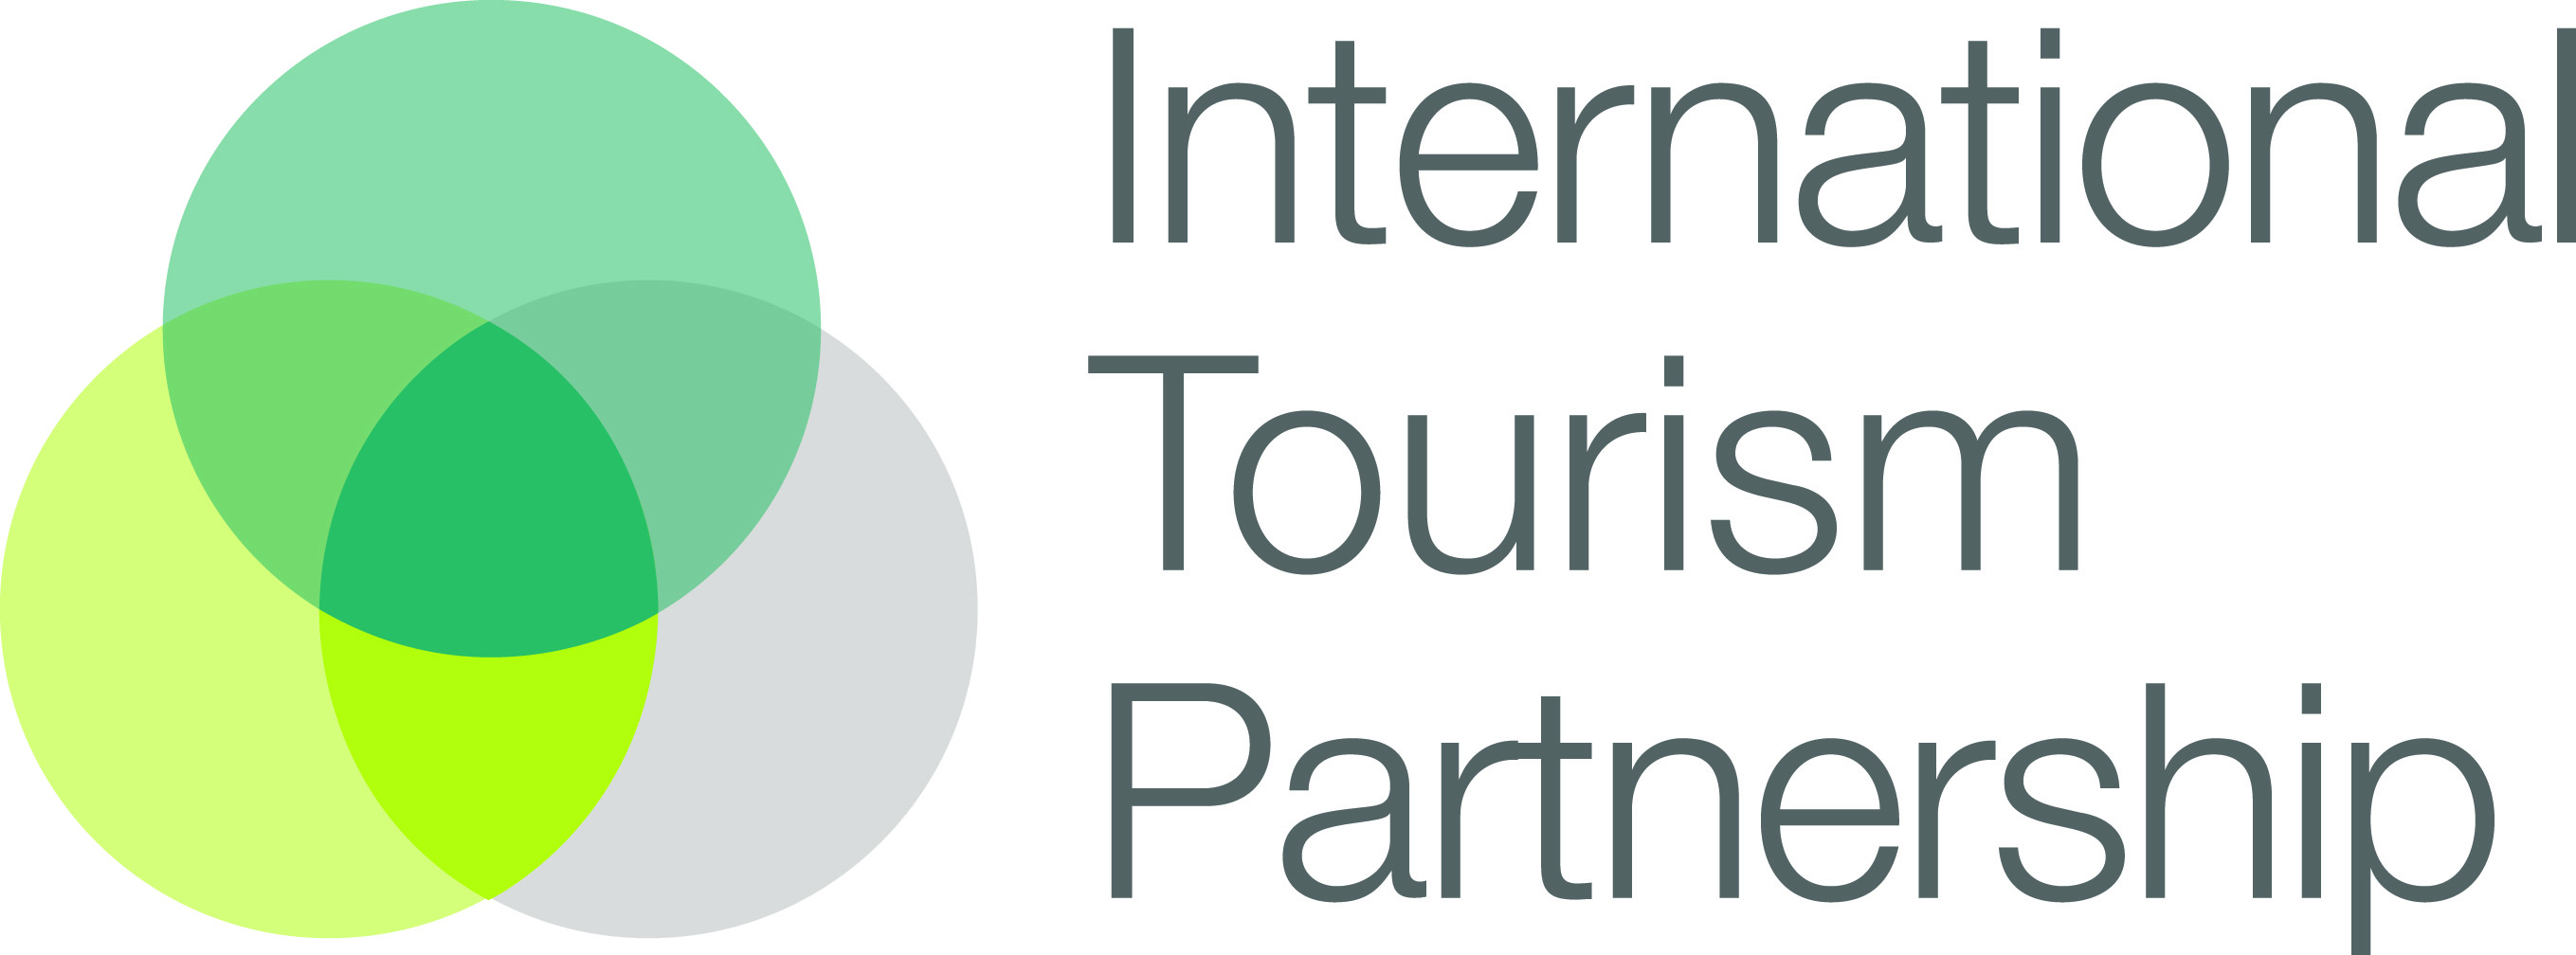 International Tourism Partnership Blue And Green Tomorrow